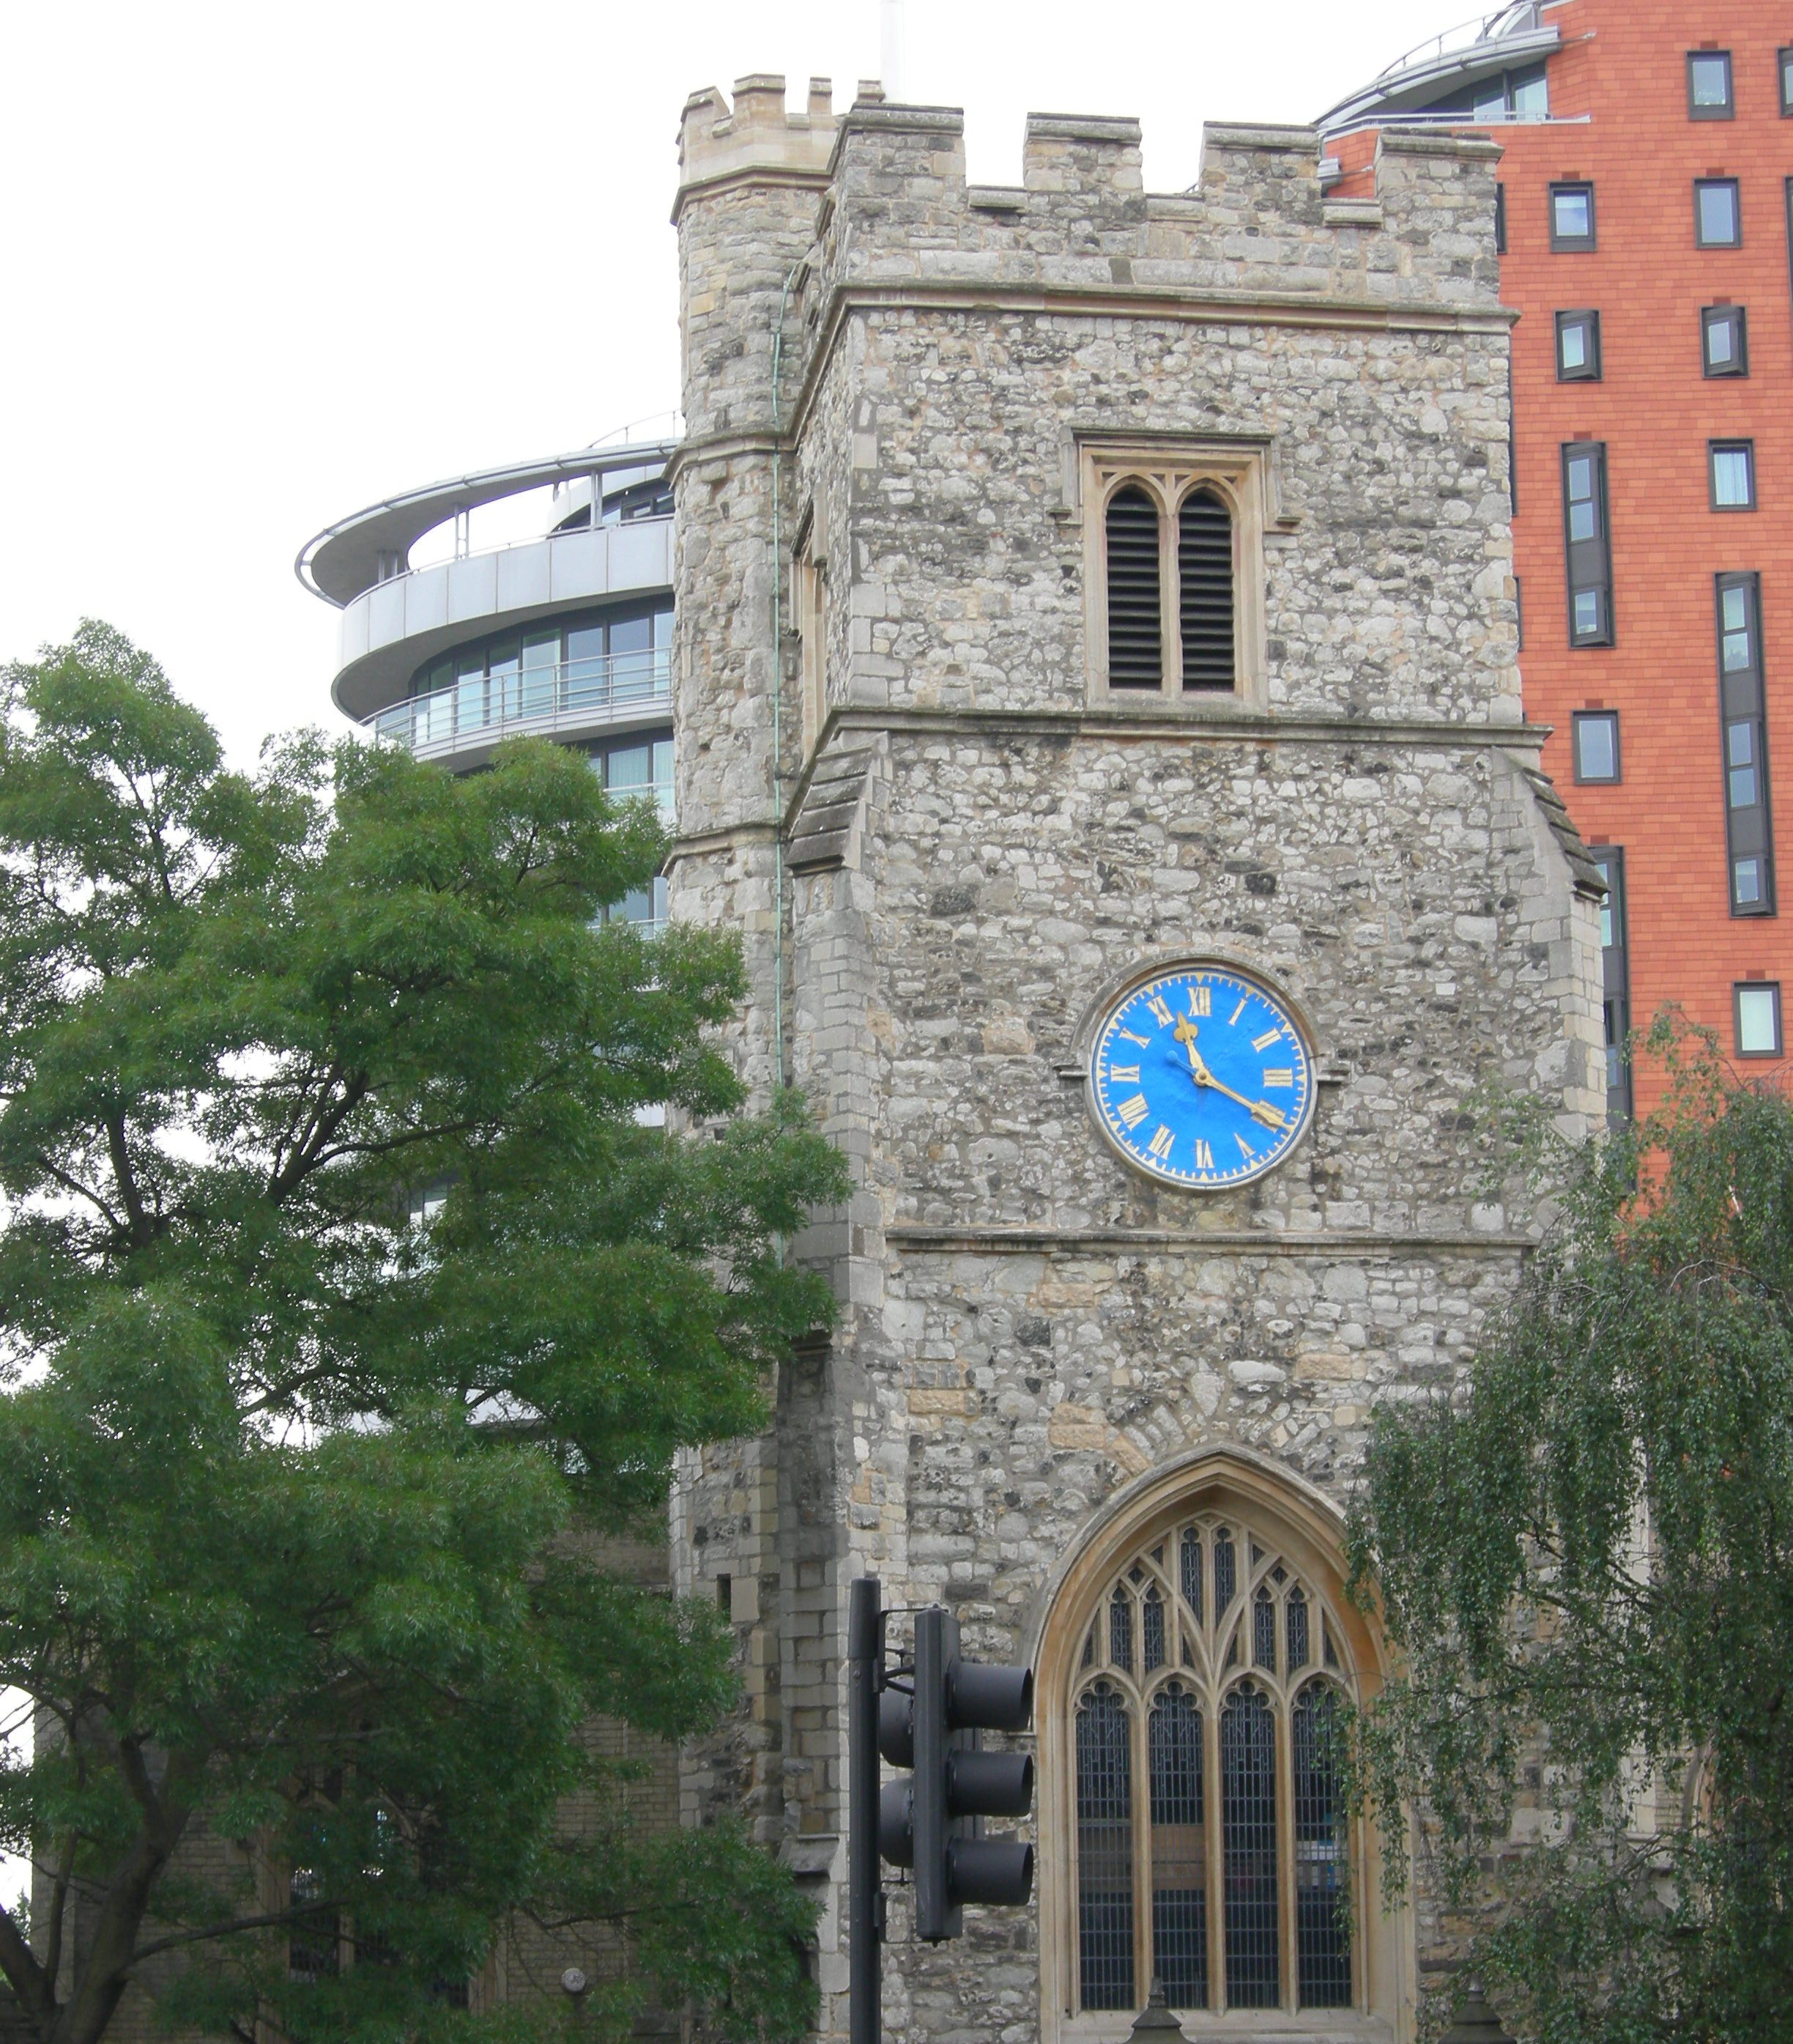 File:St Mary's Church Putney.JPG - Wikimedia Commons